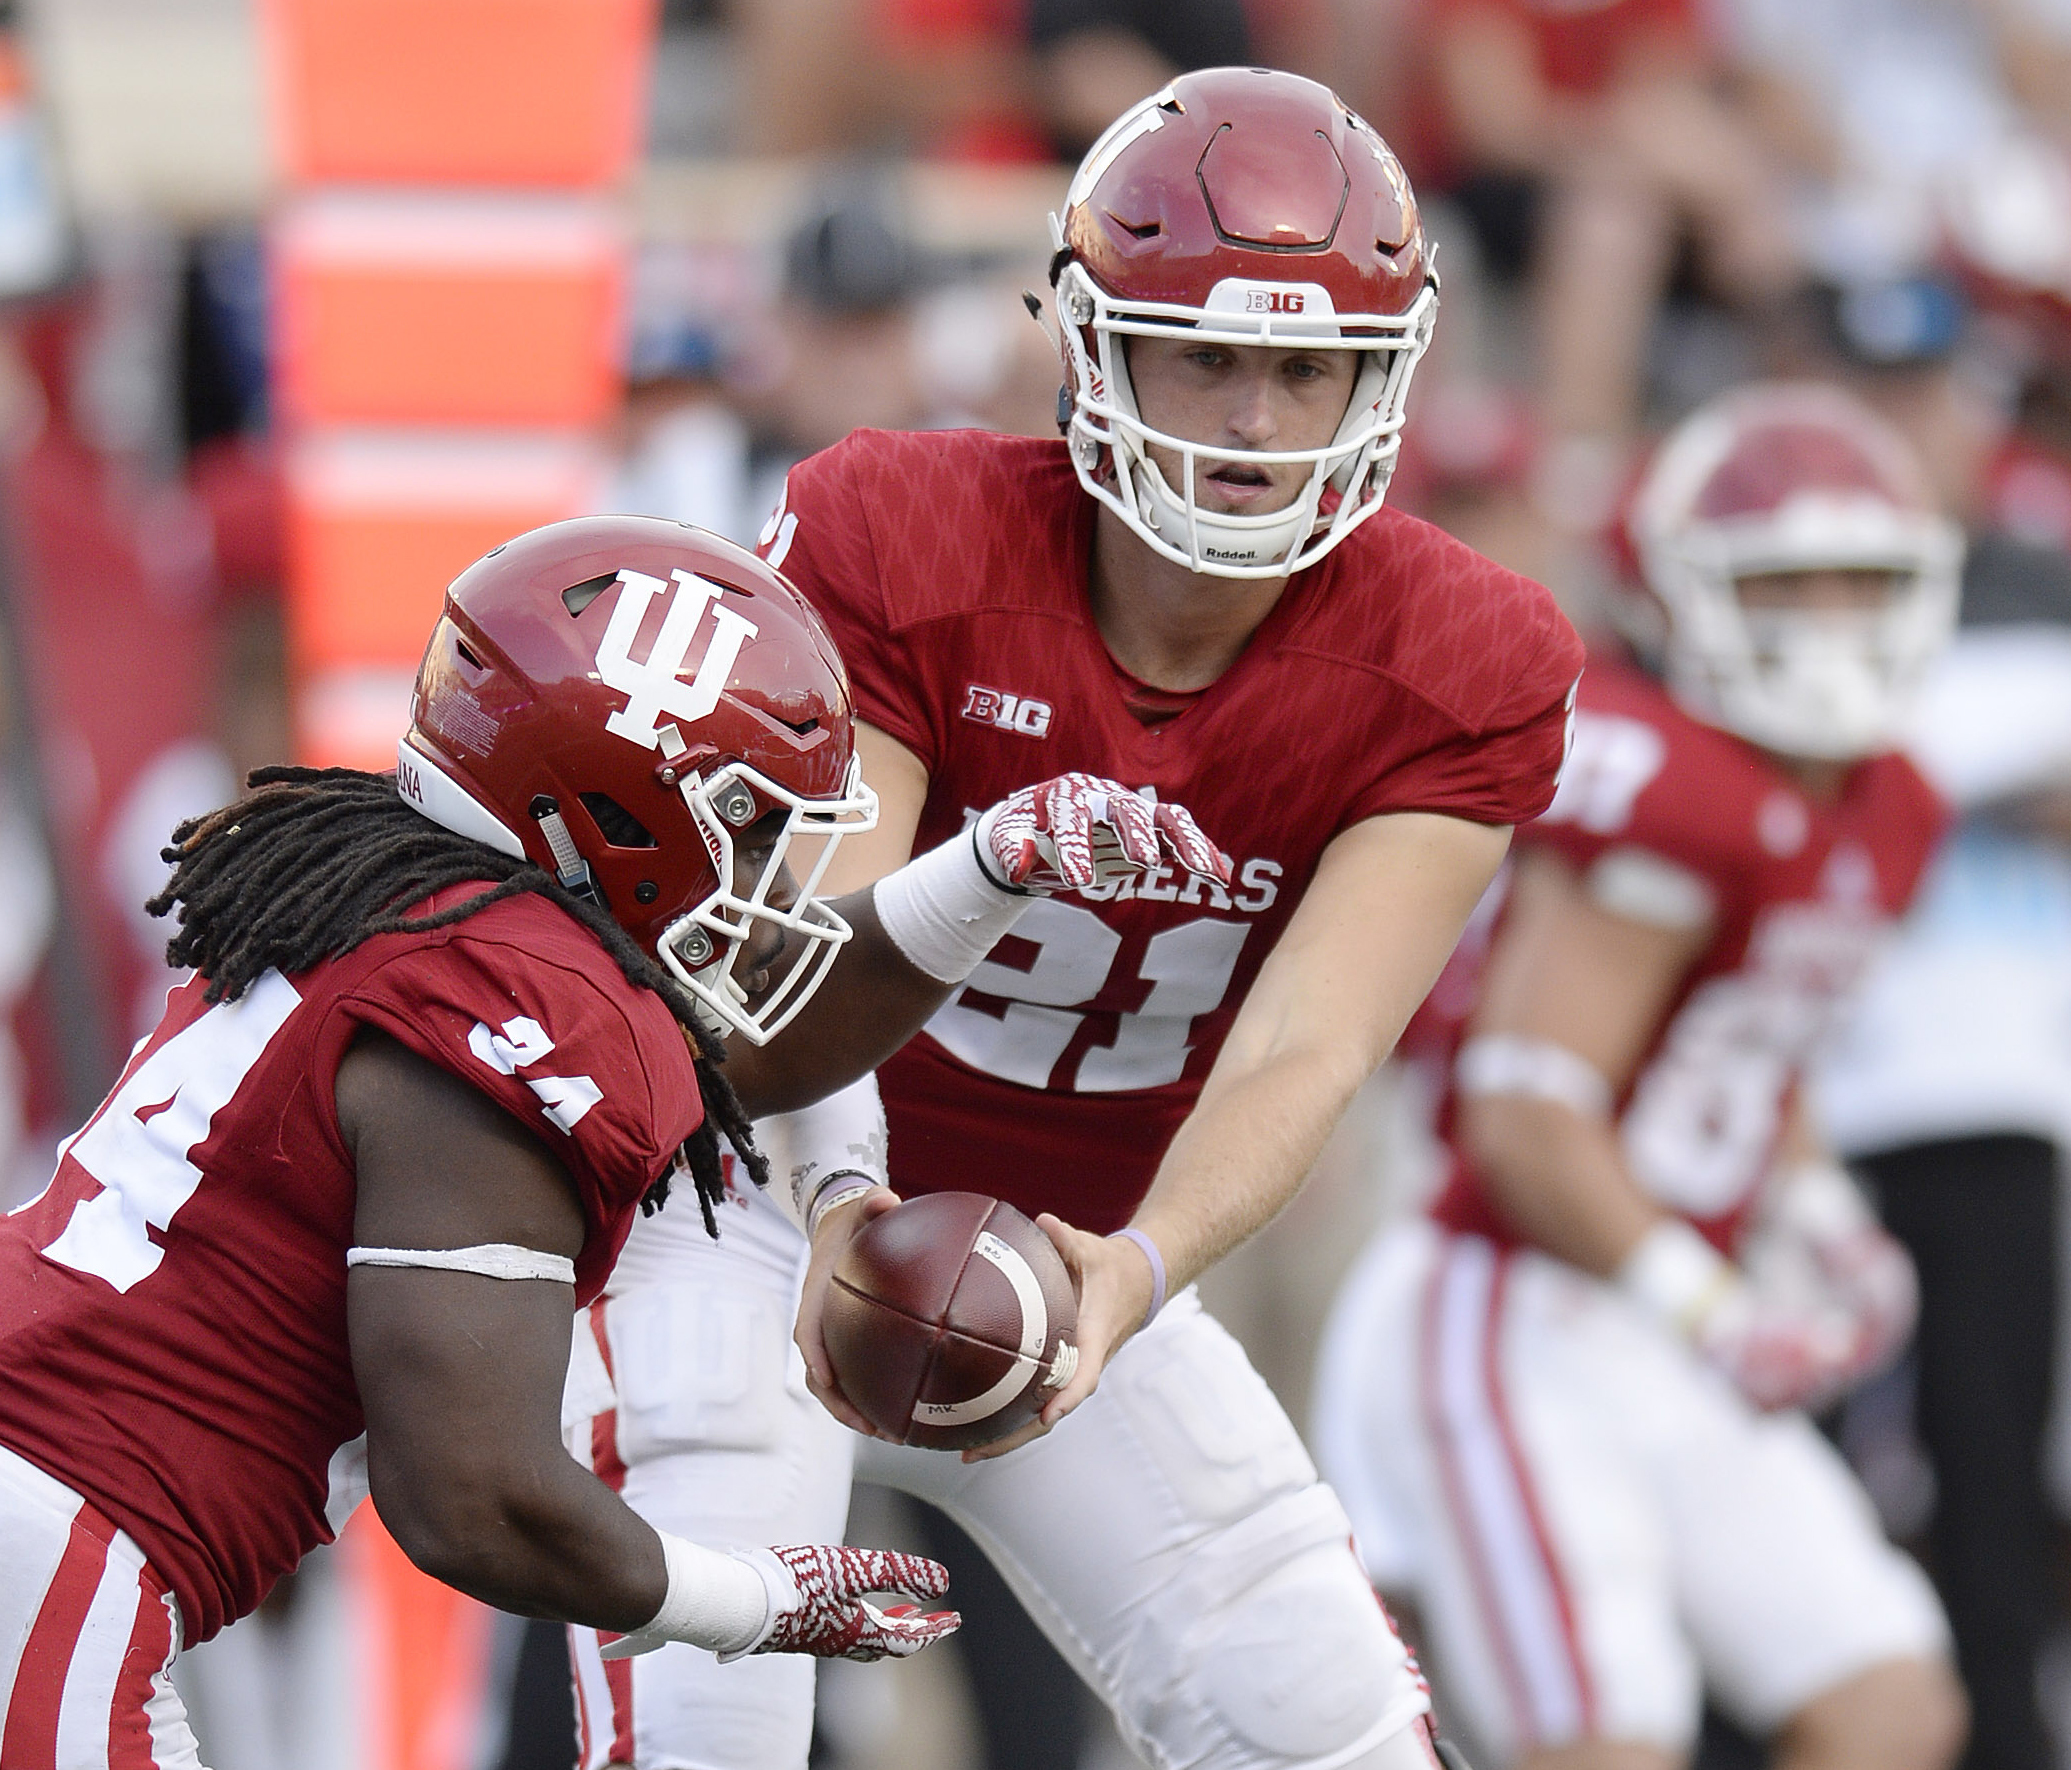 FILE - In this Sept. 10, 2016, file photo, Indiana quarterback Richard Lagow (21) hands off to running back Devine Redding (34) during during the team's NCAA college football game against Ball State, in Bloomington, Ind. Lagow likes everything about his n